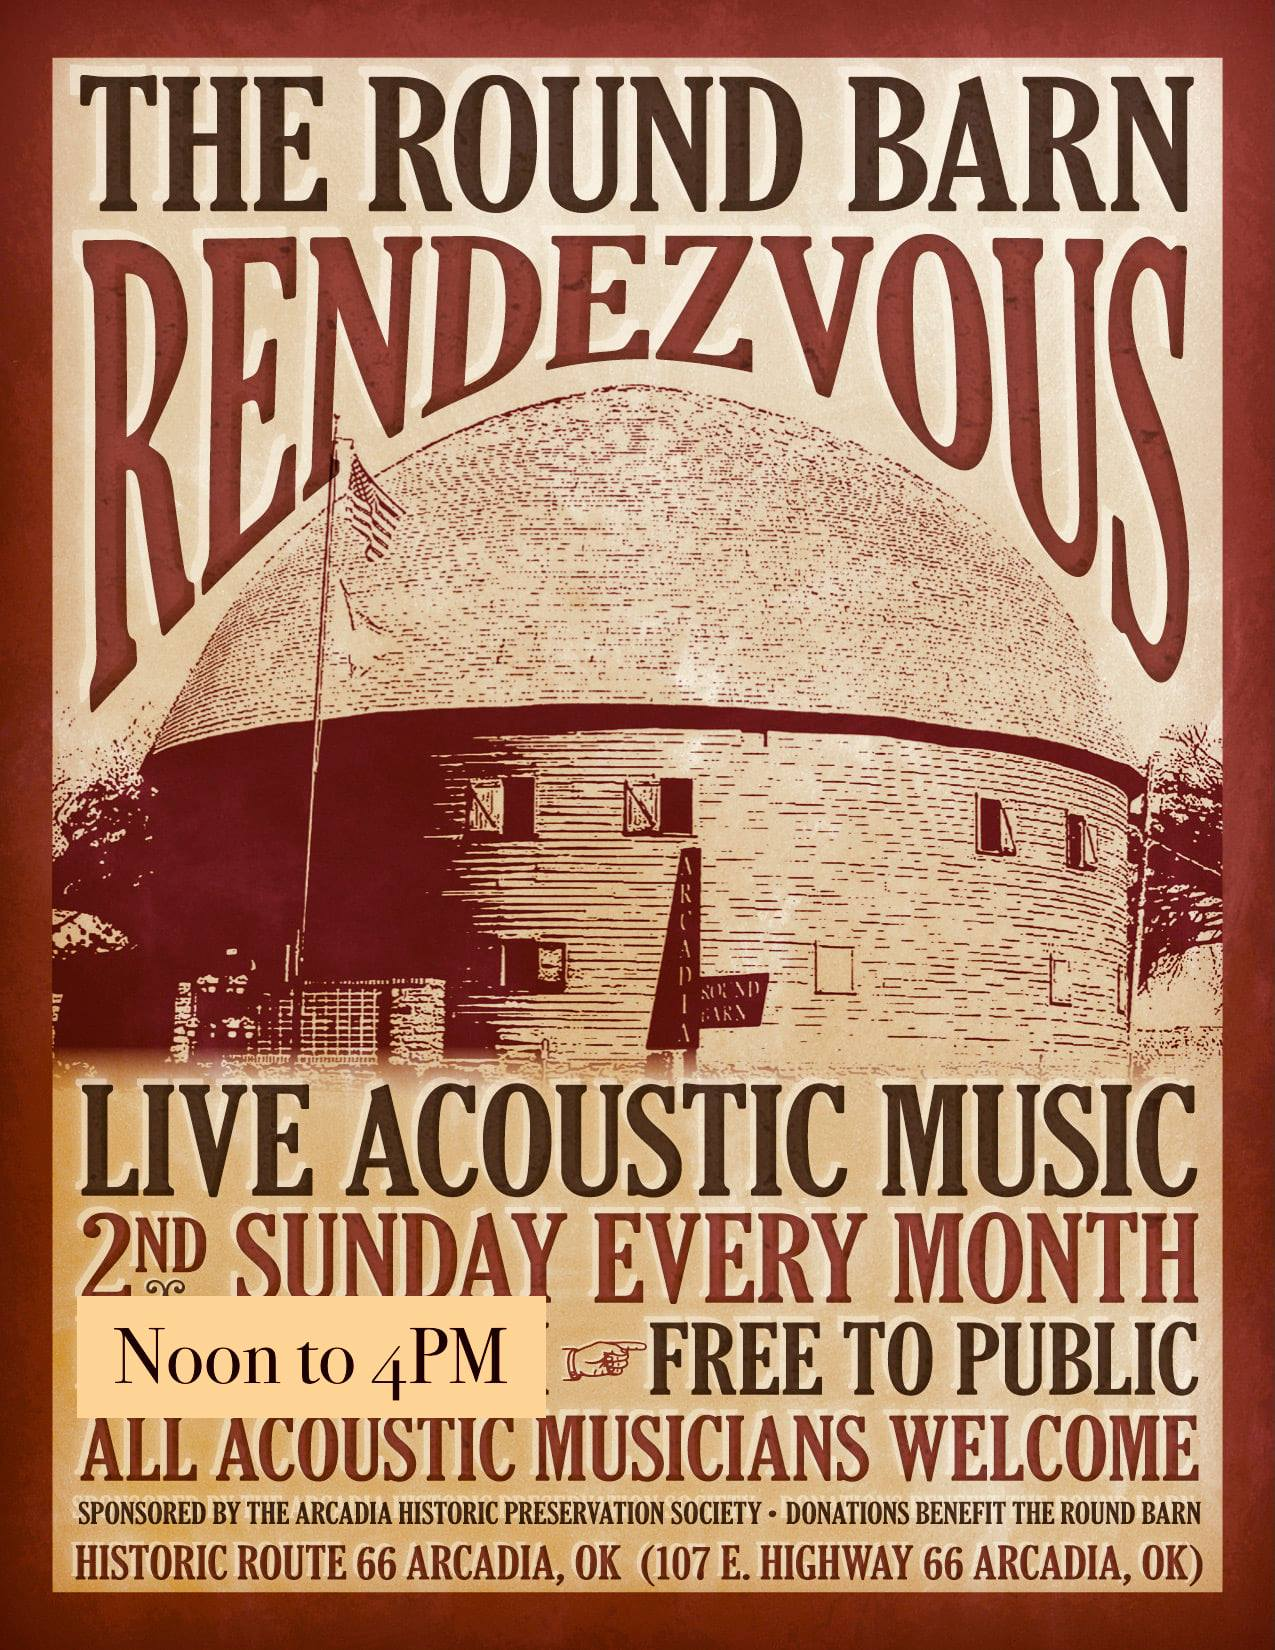 The Round Barn Rendezvous - All Acoustic Musicians Welcome - Historic Route 66 Arcadia Round Barn